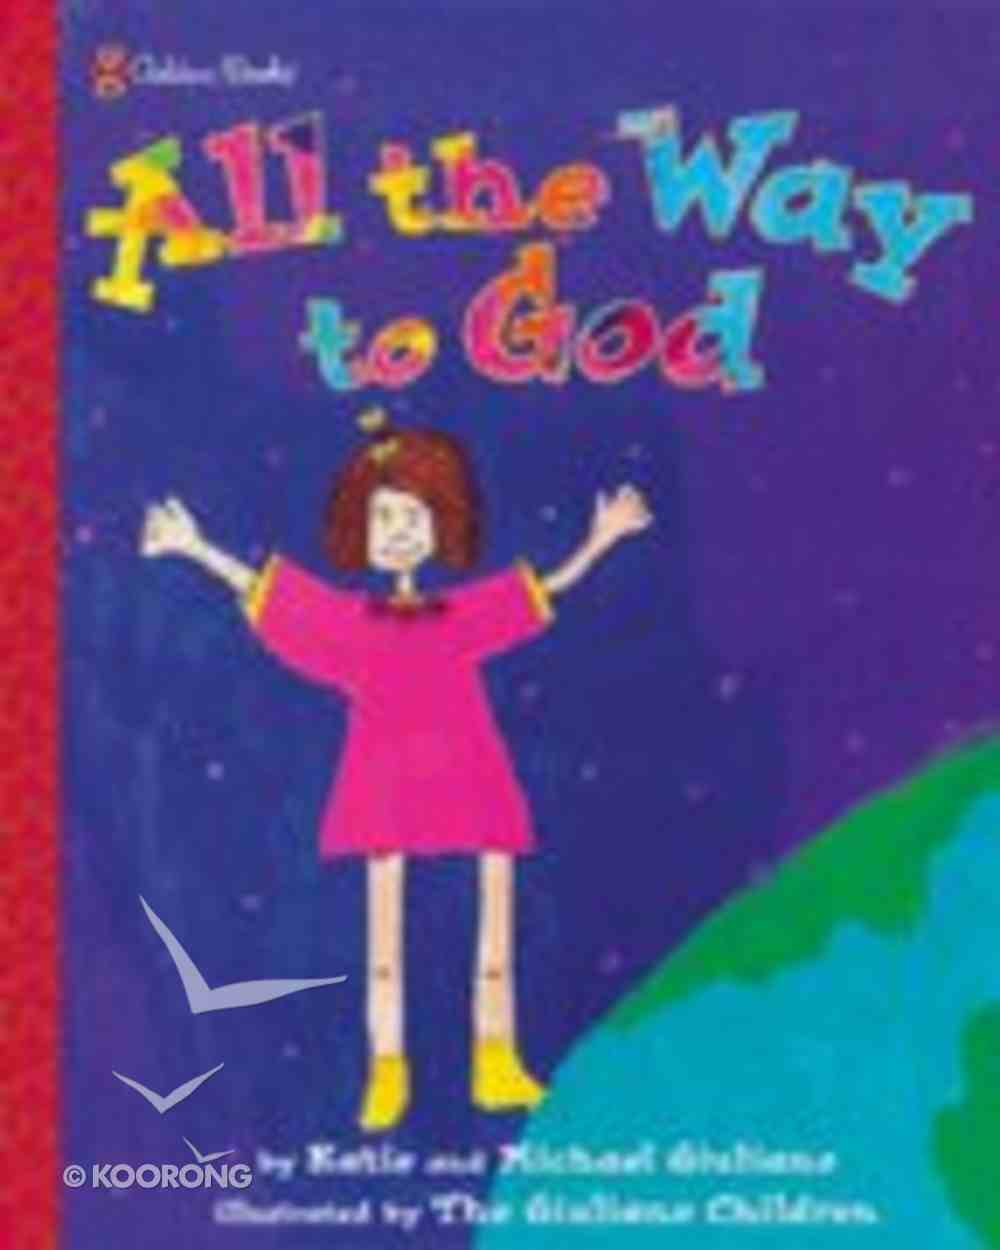 Golden Books: Family Storytime - All the Way to God (Golden Books Family Storytime Series) Hardback